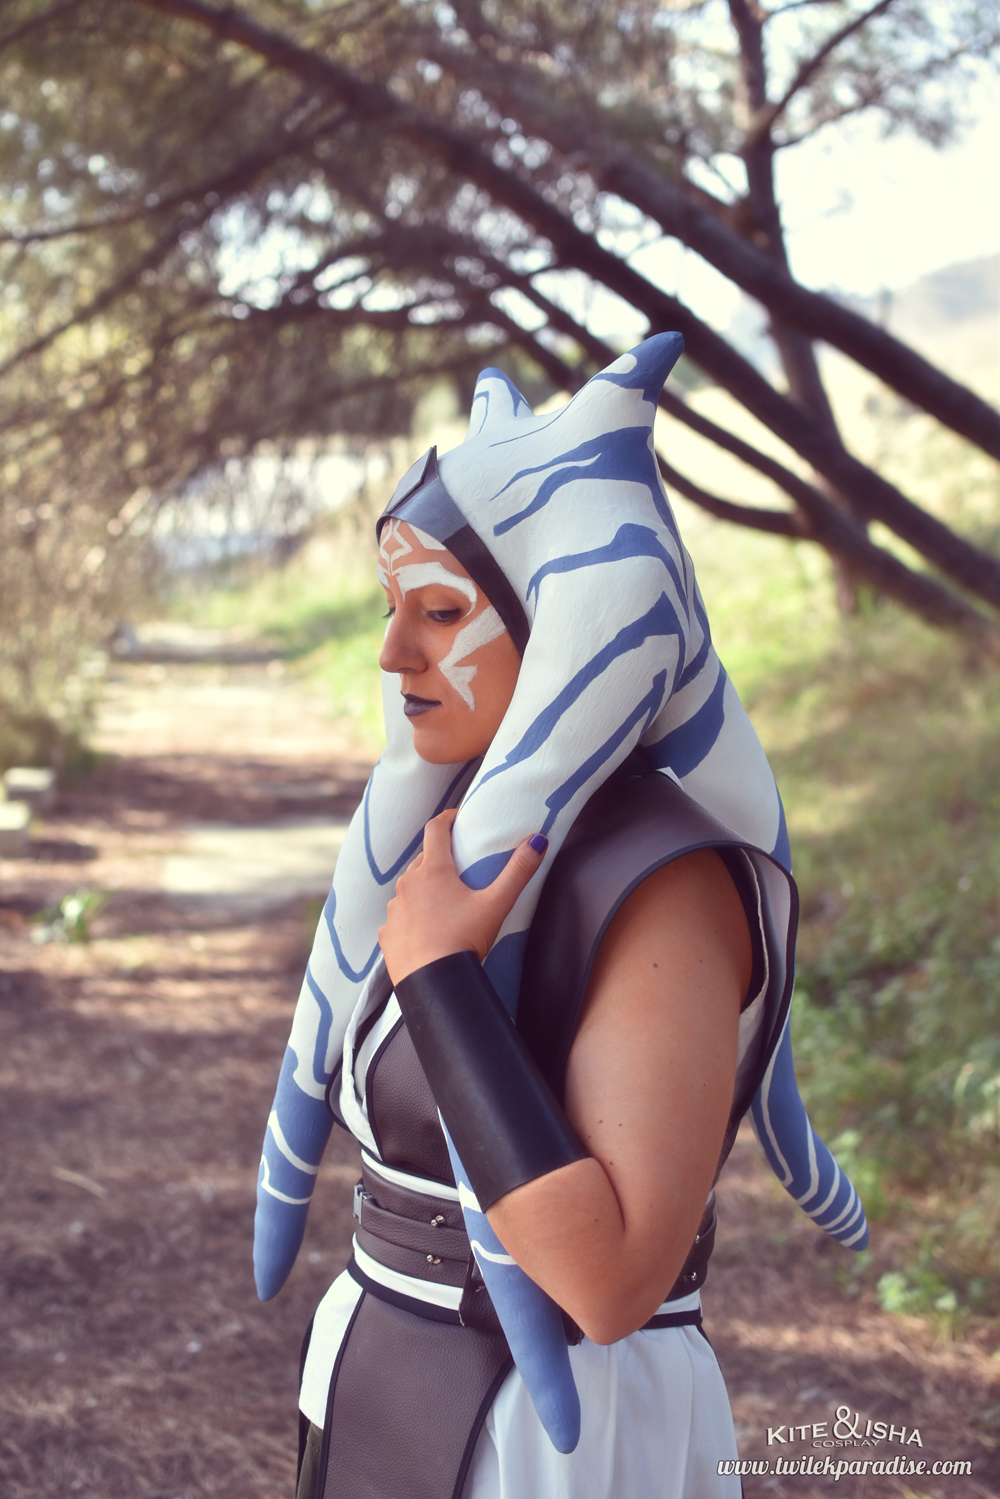 Ahsoka tano adult hentai freak